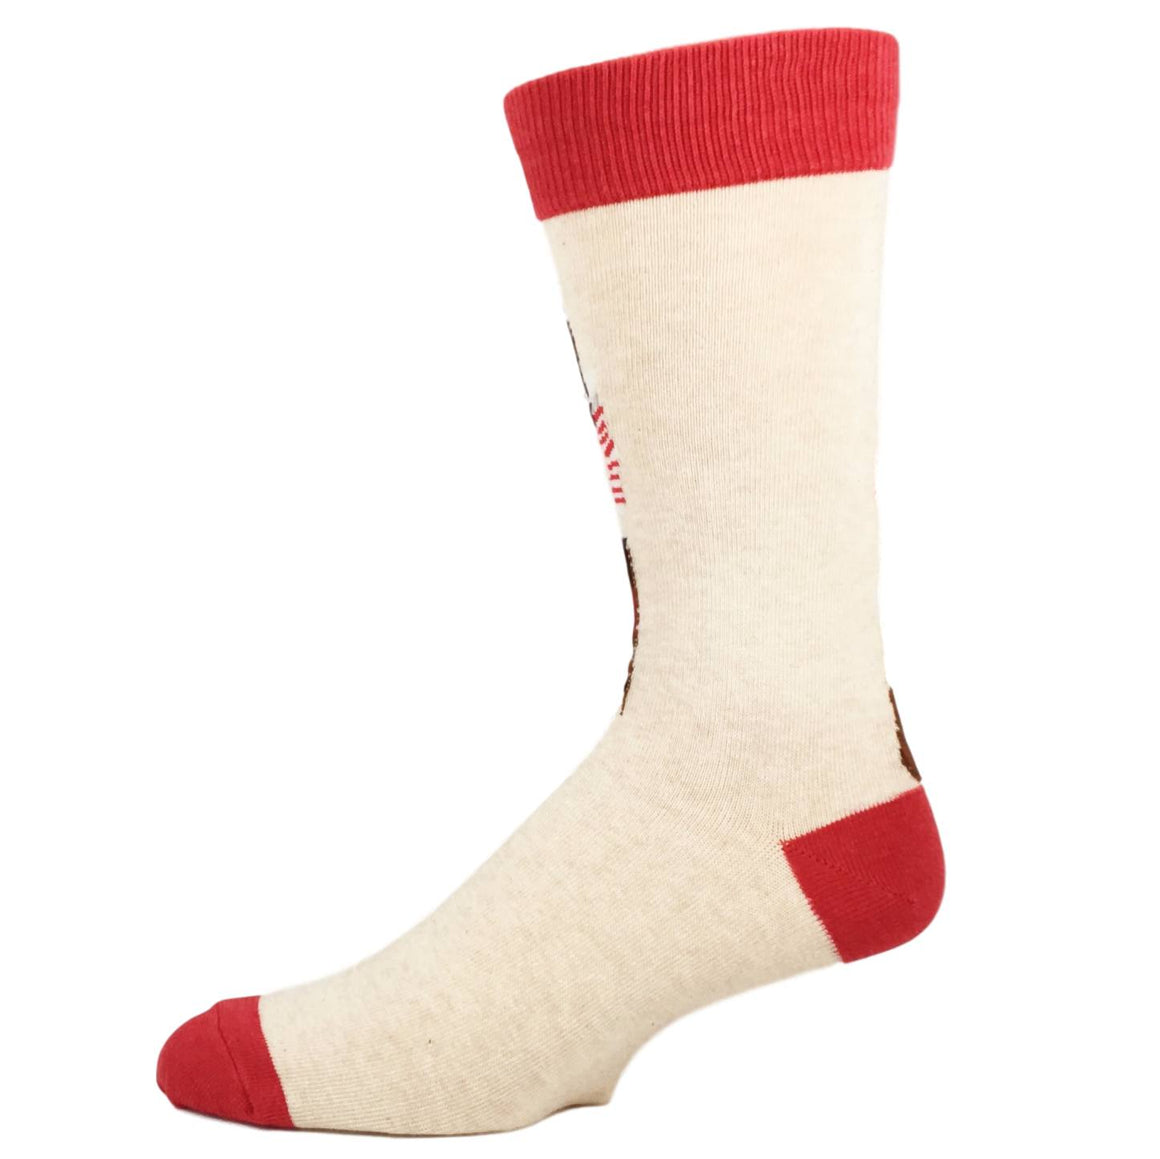 Classic Coke Santa Socks in Tan by SockSmith - The Sock Spot